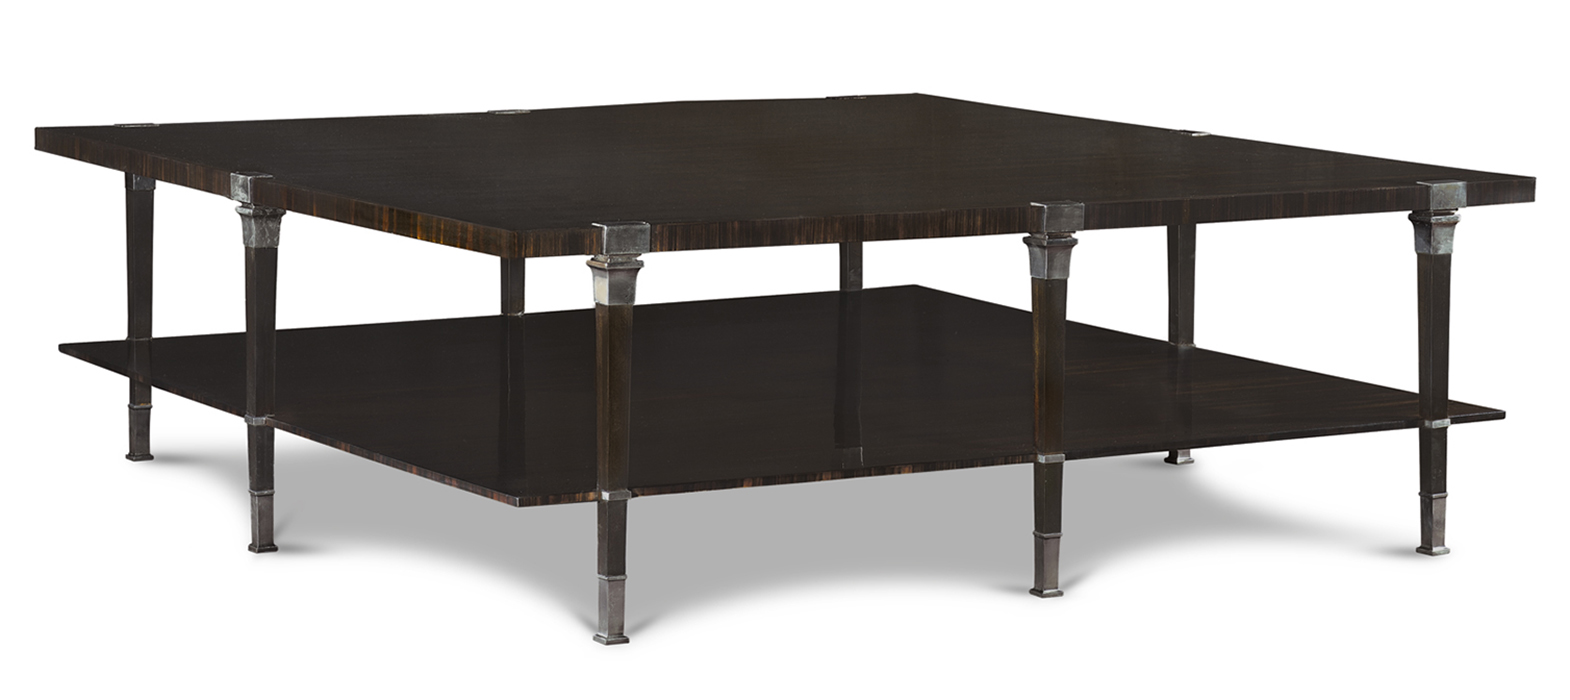 Louviers cocktail table 150 x 150 alfonso marina for Table carree 150 x 150